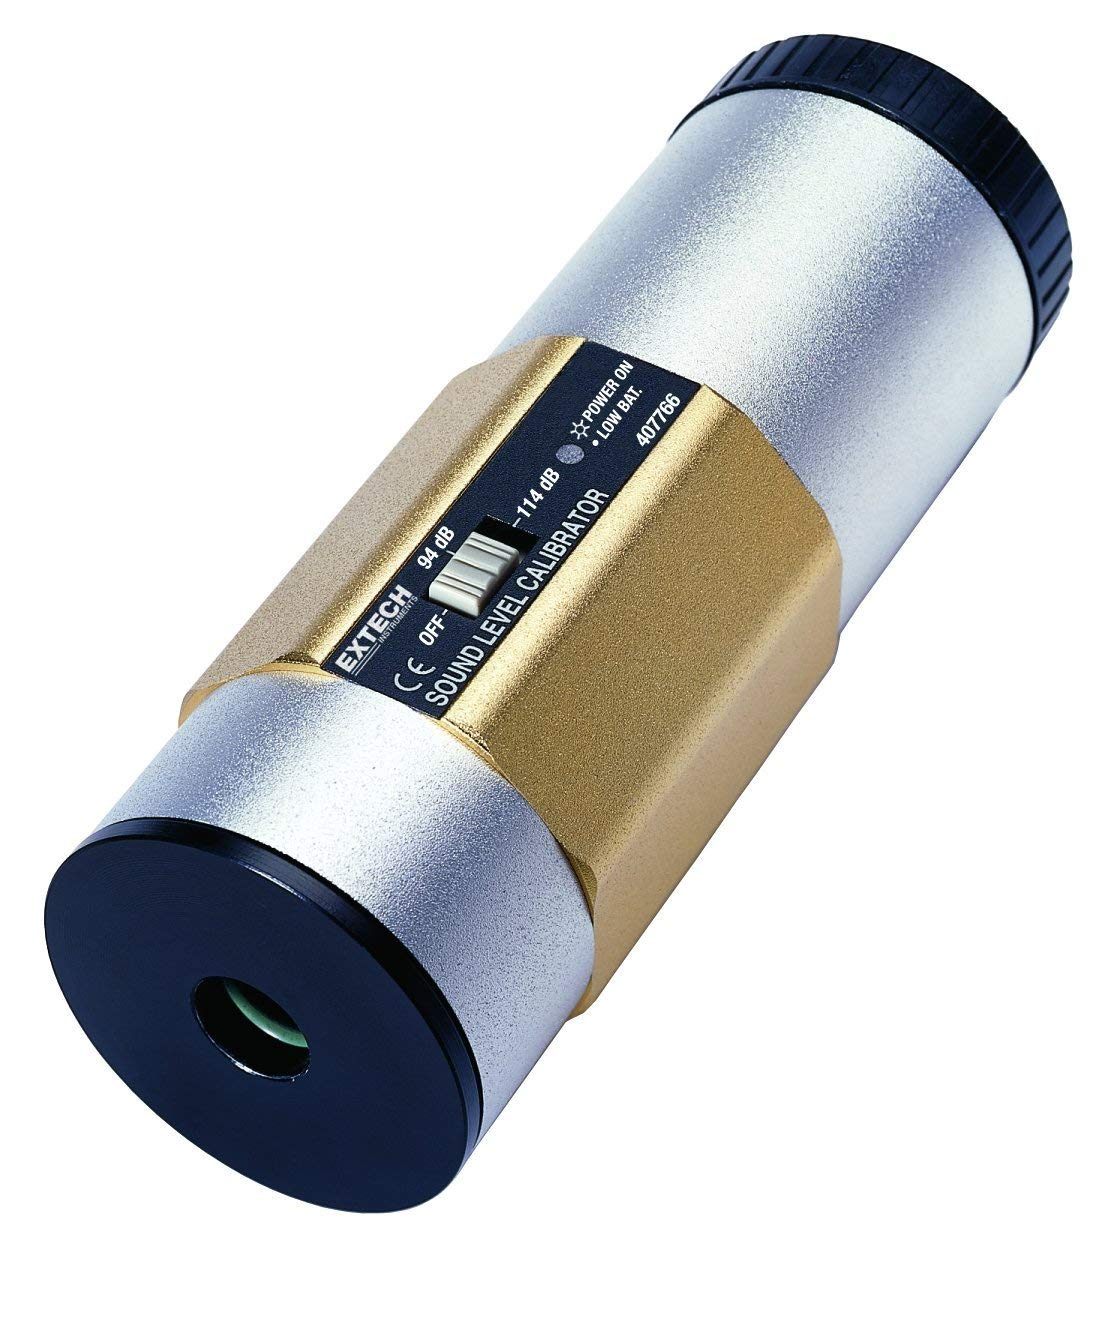 EXTECH 407766 - 94/114dB Sound CalibratorLevel position to select 94dB or 114dB